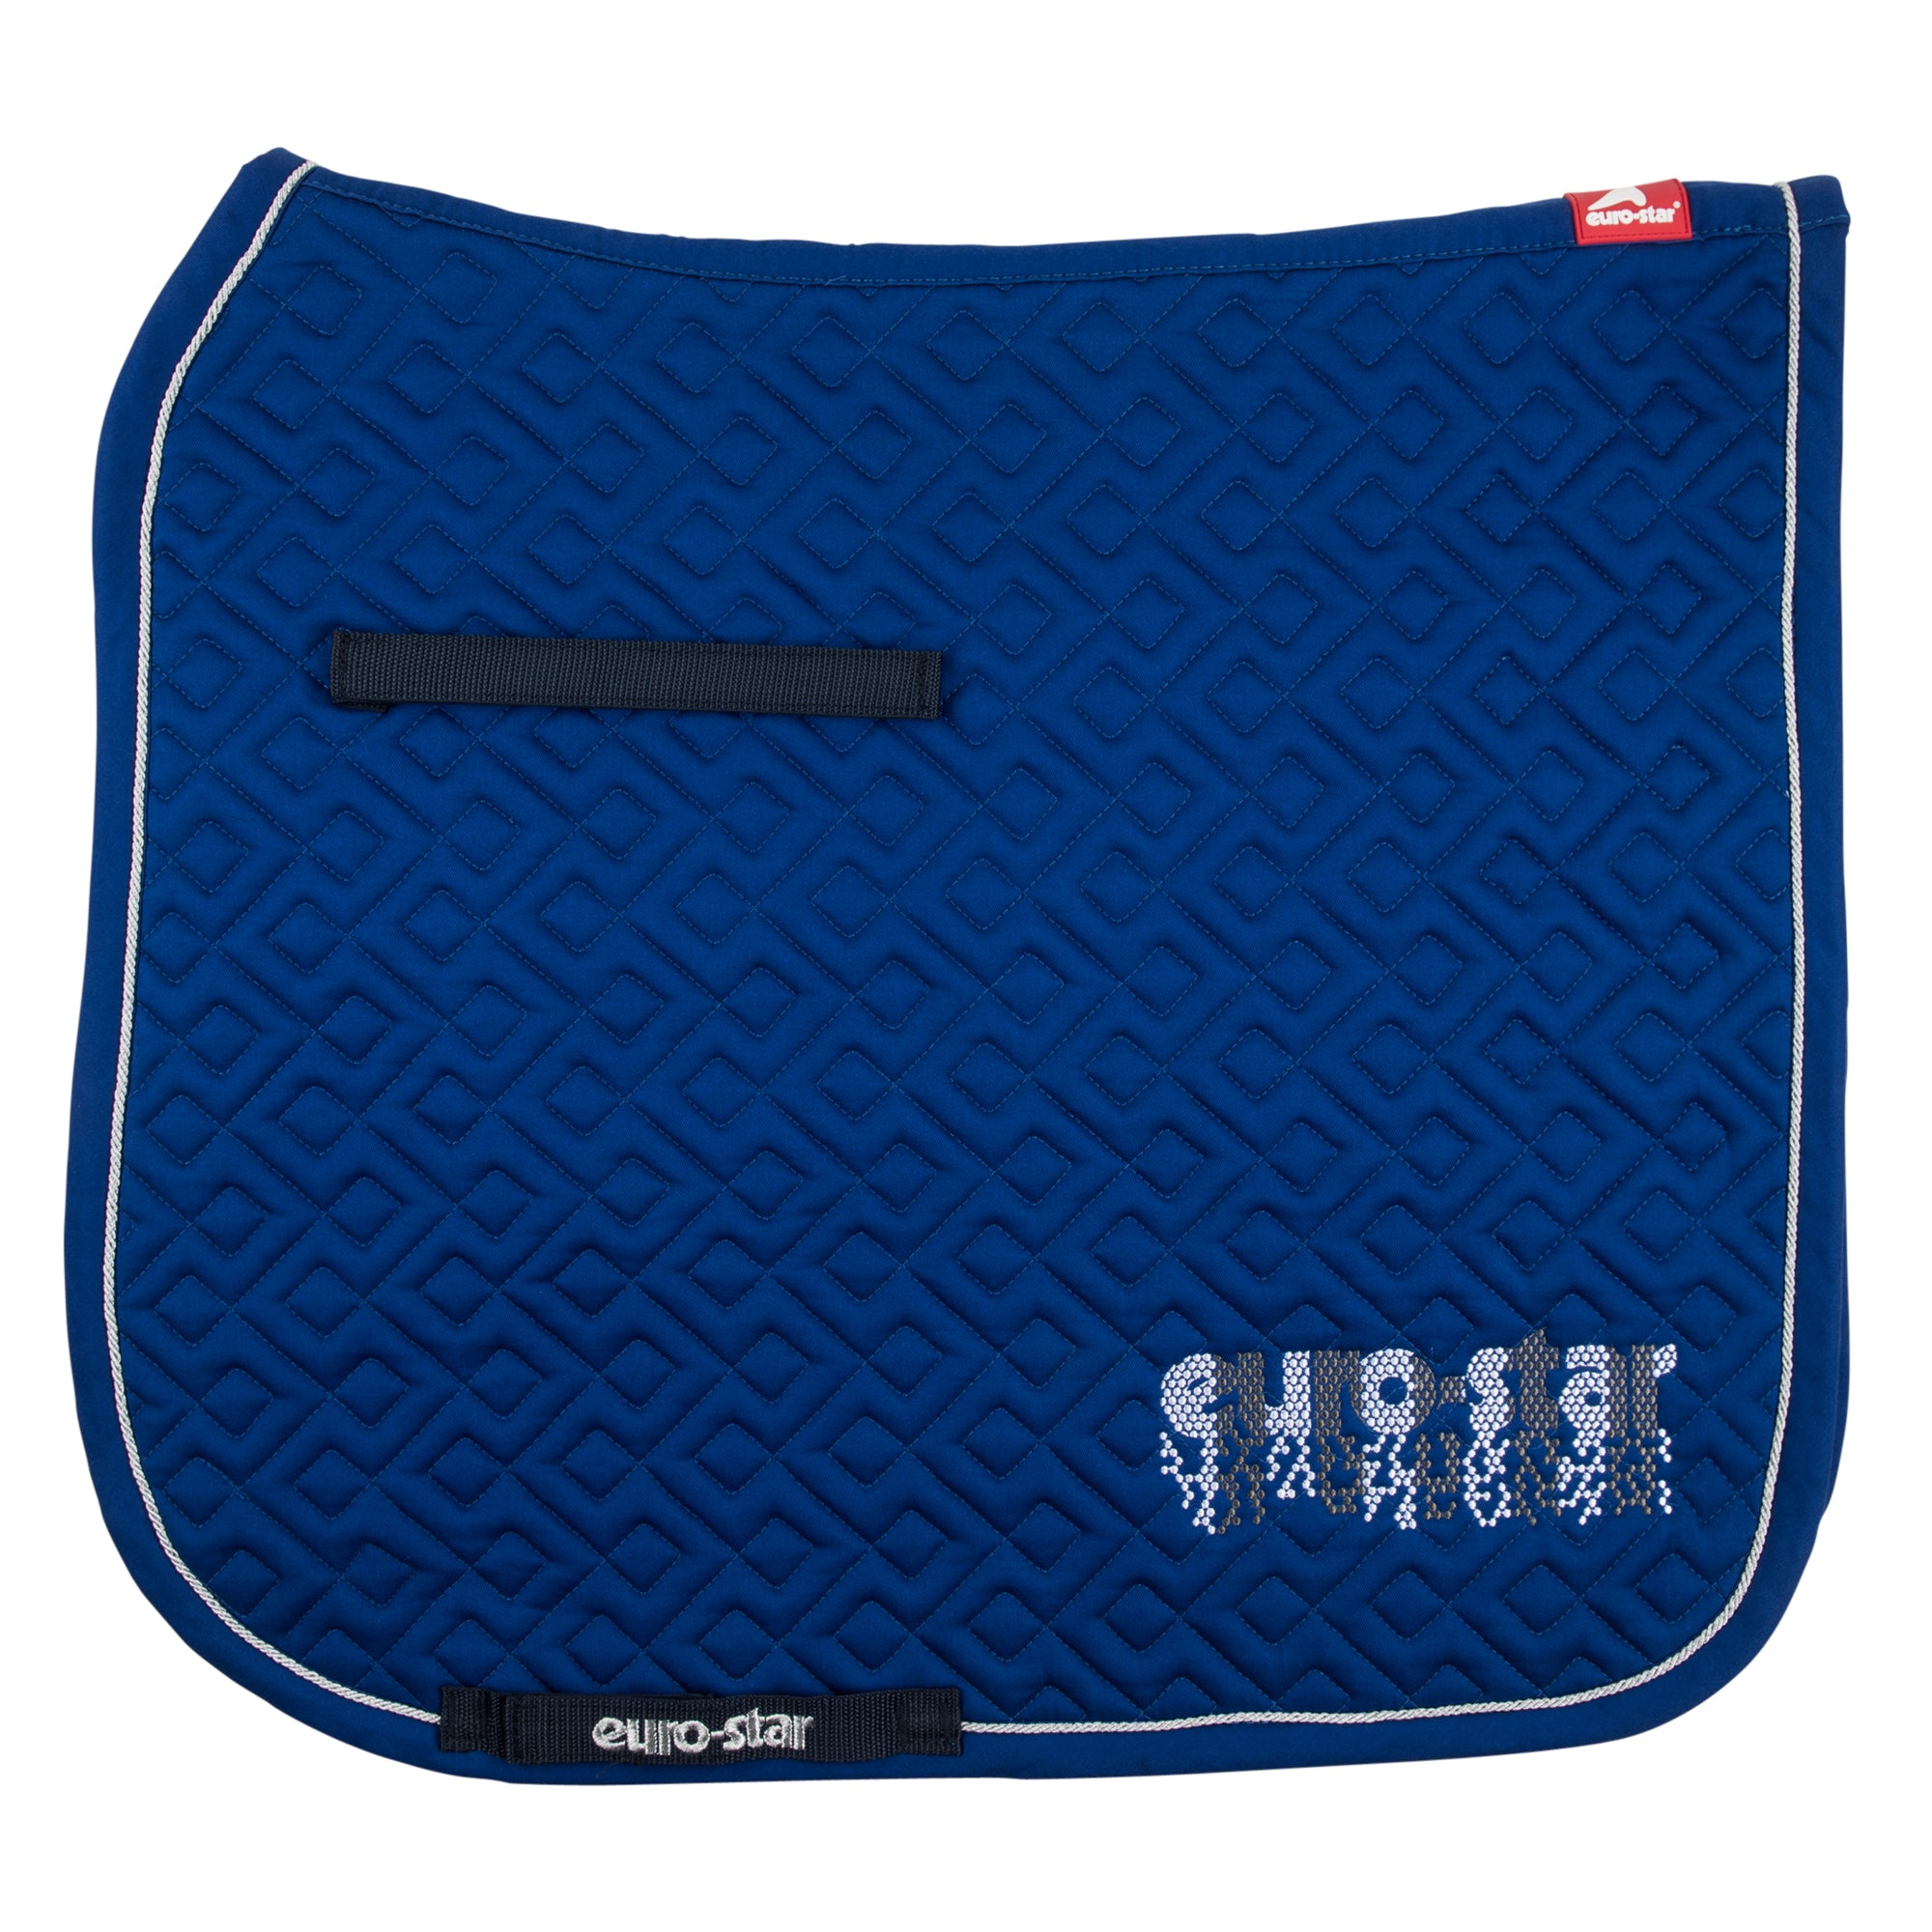 Euro-star AW17 Excellent Saddle Pad - Deep Blue - Dressage only - Divine Equestrian